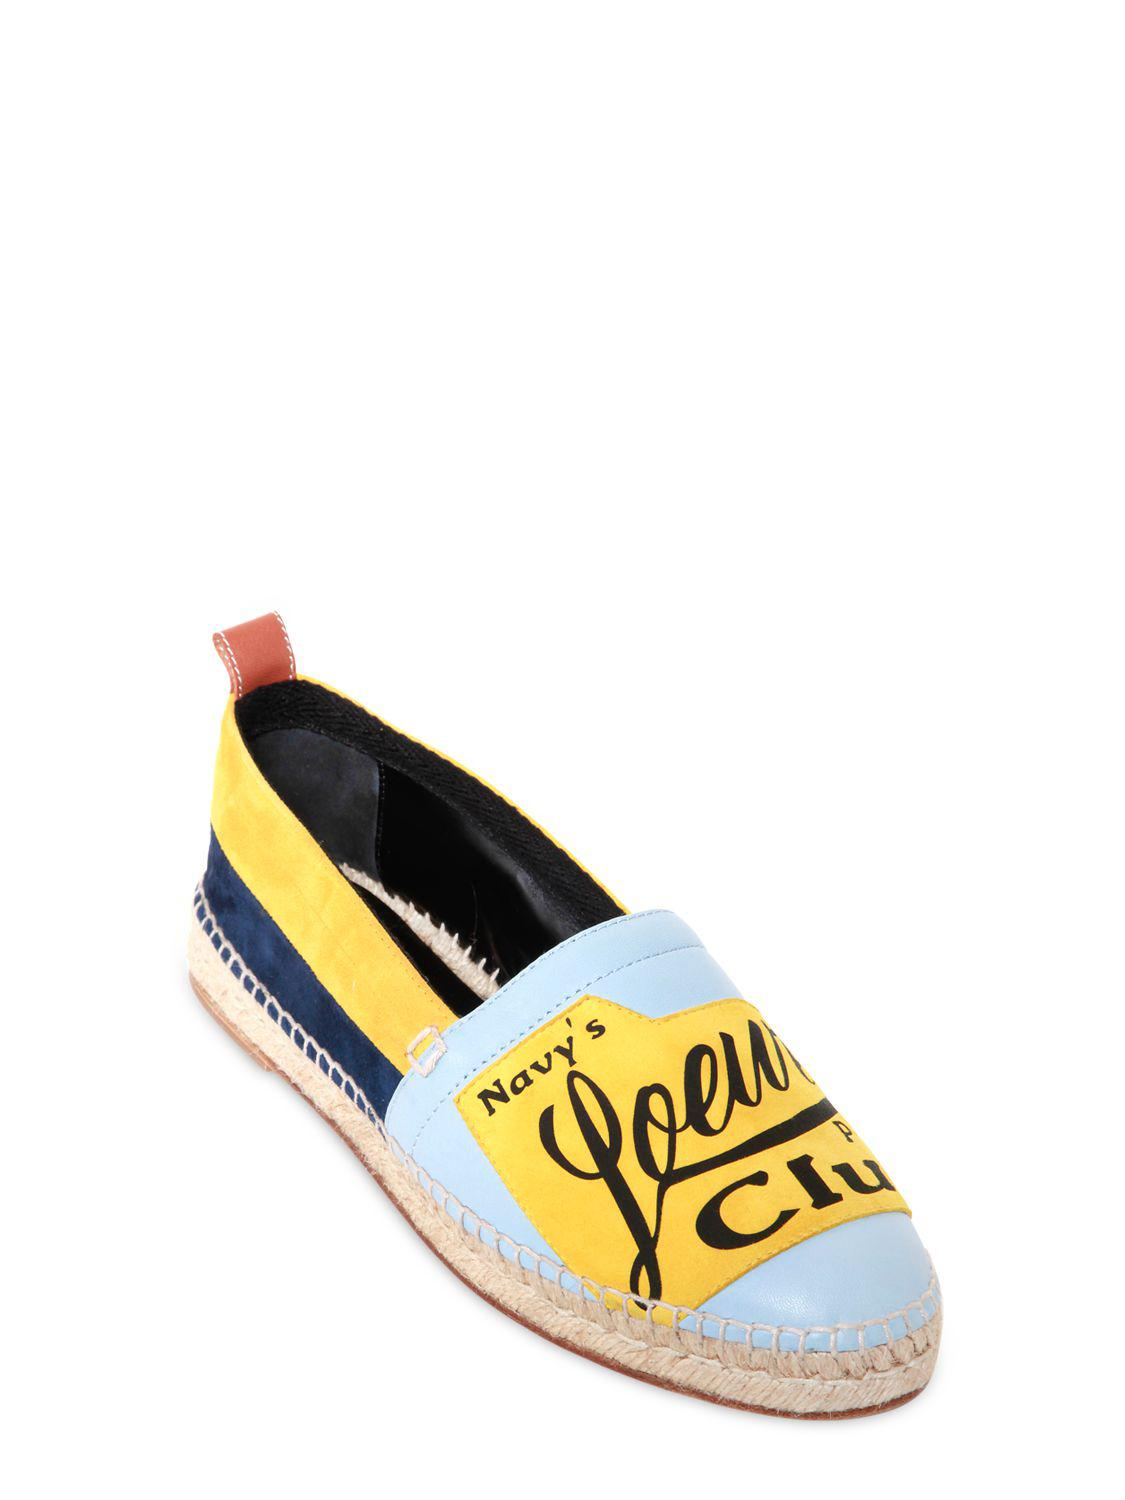 LoeweLOGO PATCH SUEDE & LEATHER ESPADRILLES H5mKUYILUF